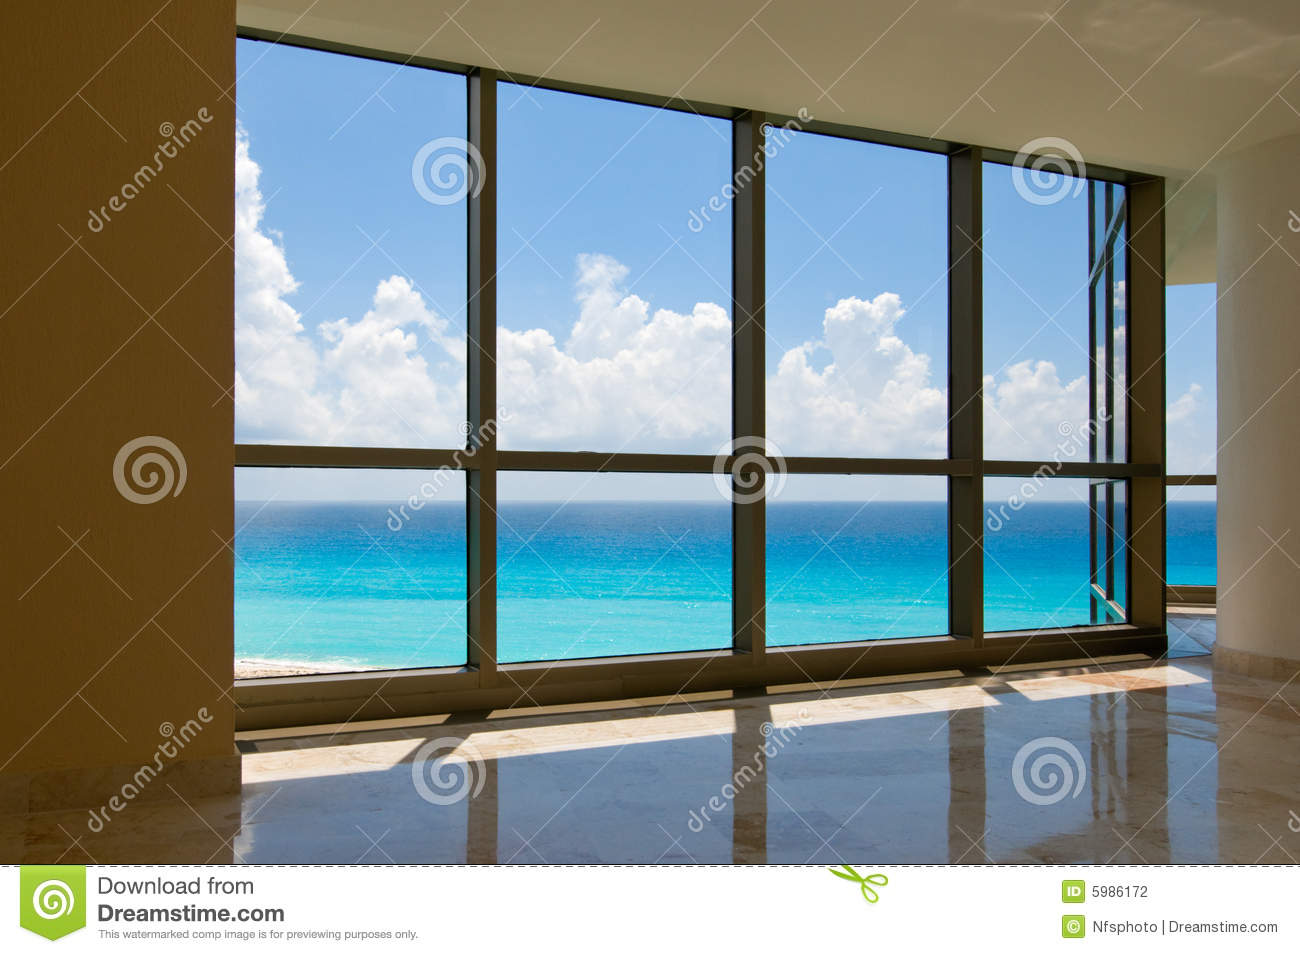 View of tropical beach through hotel windows